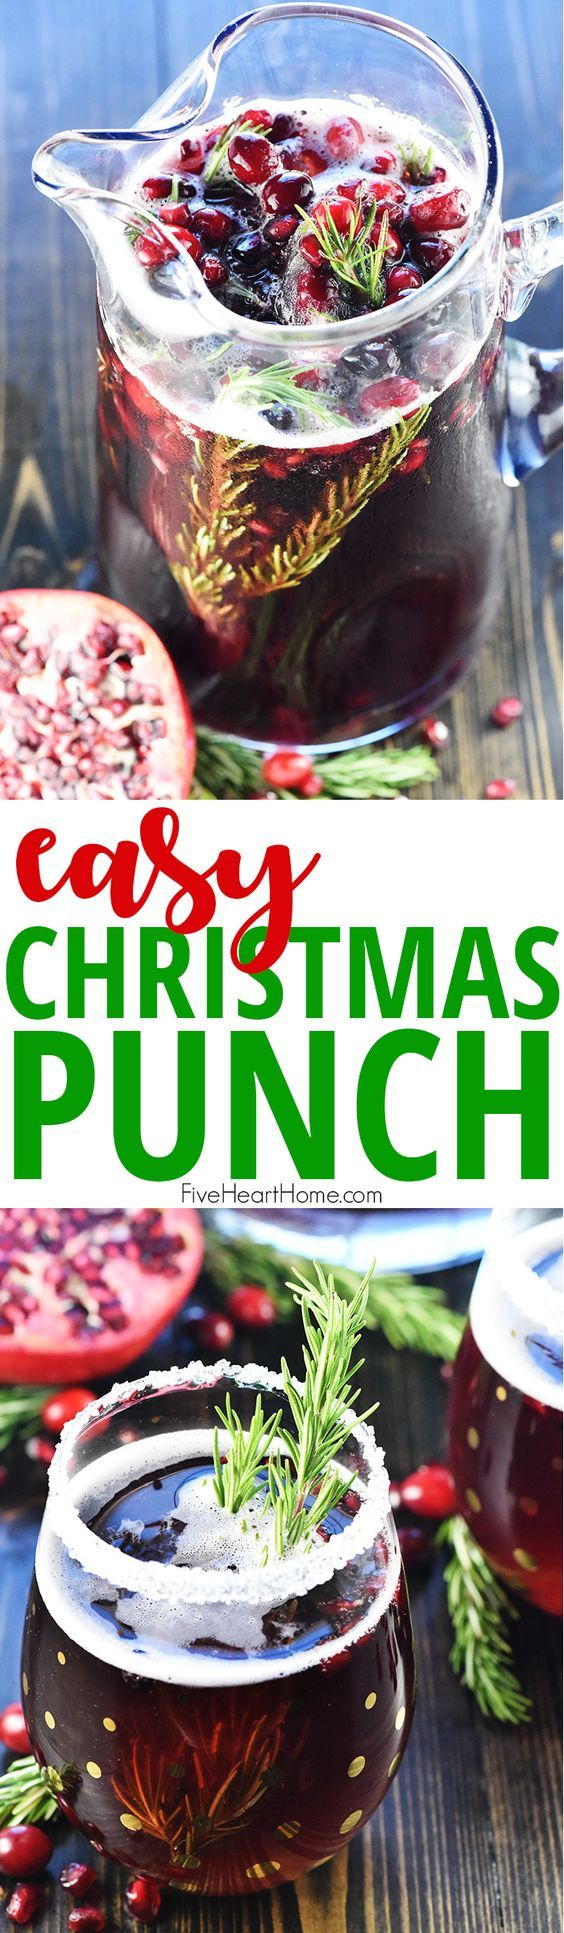 Easy Christmas Punch ~ a festive, sparkling, boozy holiday beverage featuring champagne, pomegranate juice, and cranberry juice that's perfect for Christmas or New Year's Eve parties...and it's easy to make a non-alcoholic version as well! | FiveHeartHome.com #christmas #holiday #punch #punchrecipes #champagne #champagnepunch #prosecco #pomegranate #cranberry #christmasrecipes #recipe #fivehearthome